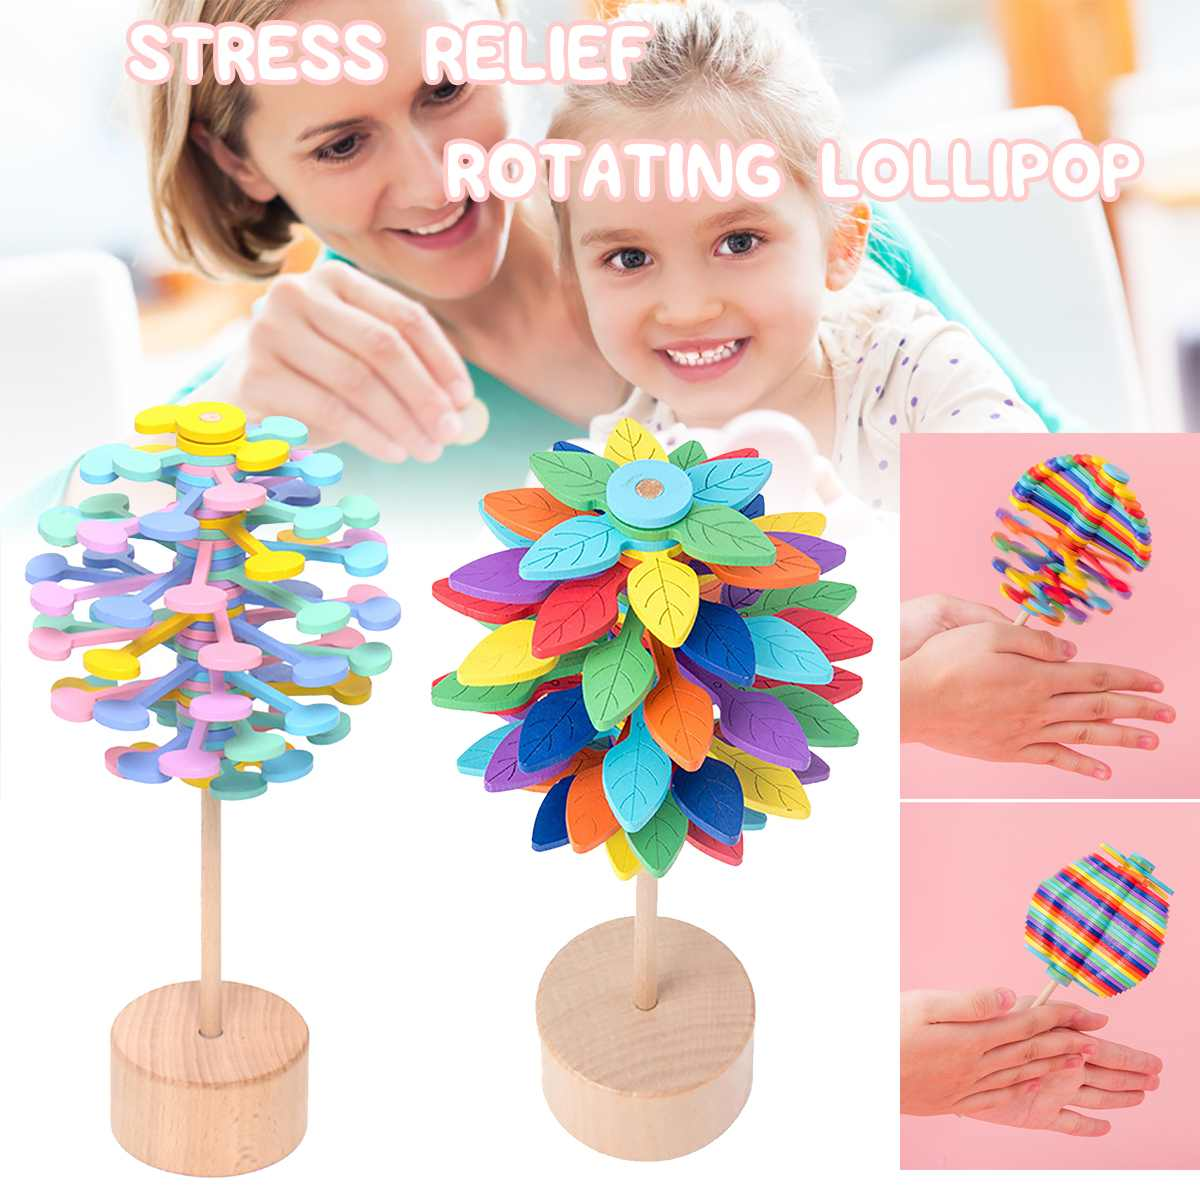 Wooden Magic Wand Stress Relief Toy Rotating Lollipop Art Decor For Home Office School Decompression Boy Girls